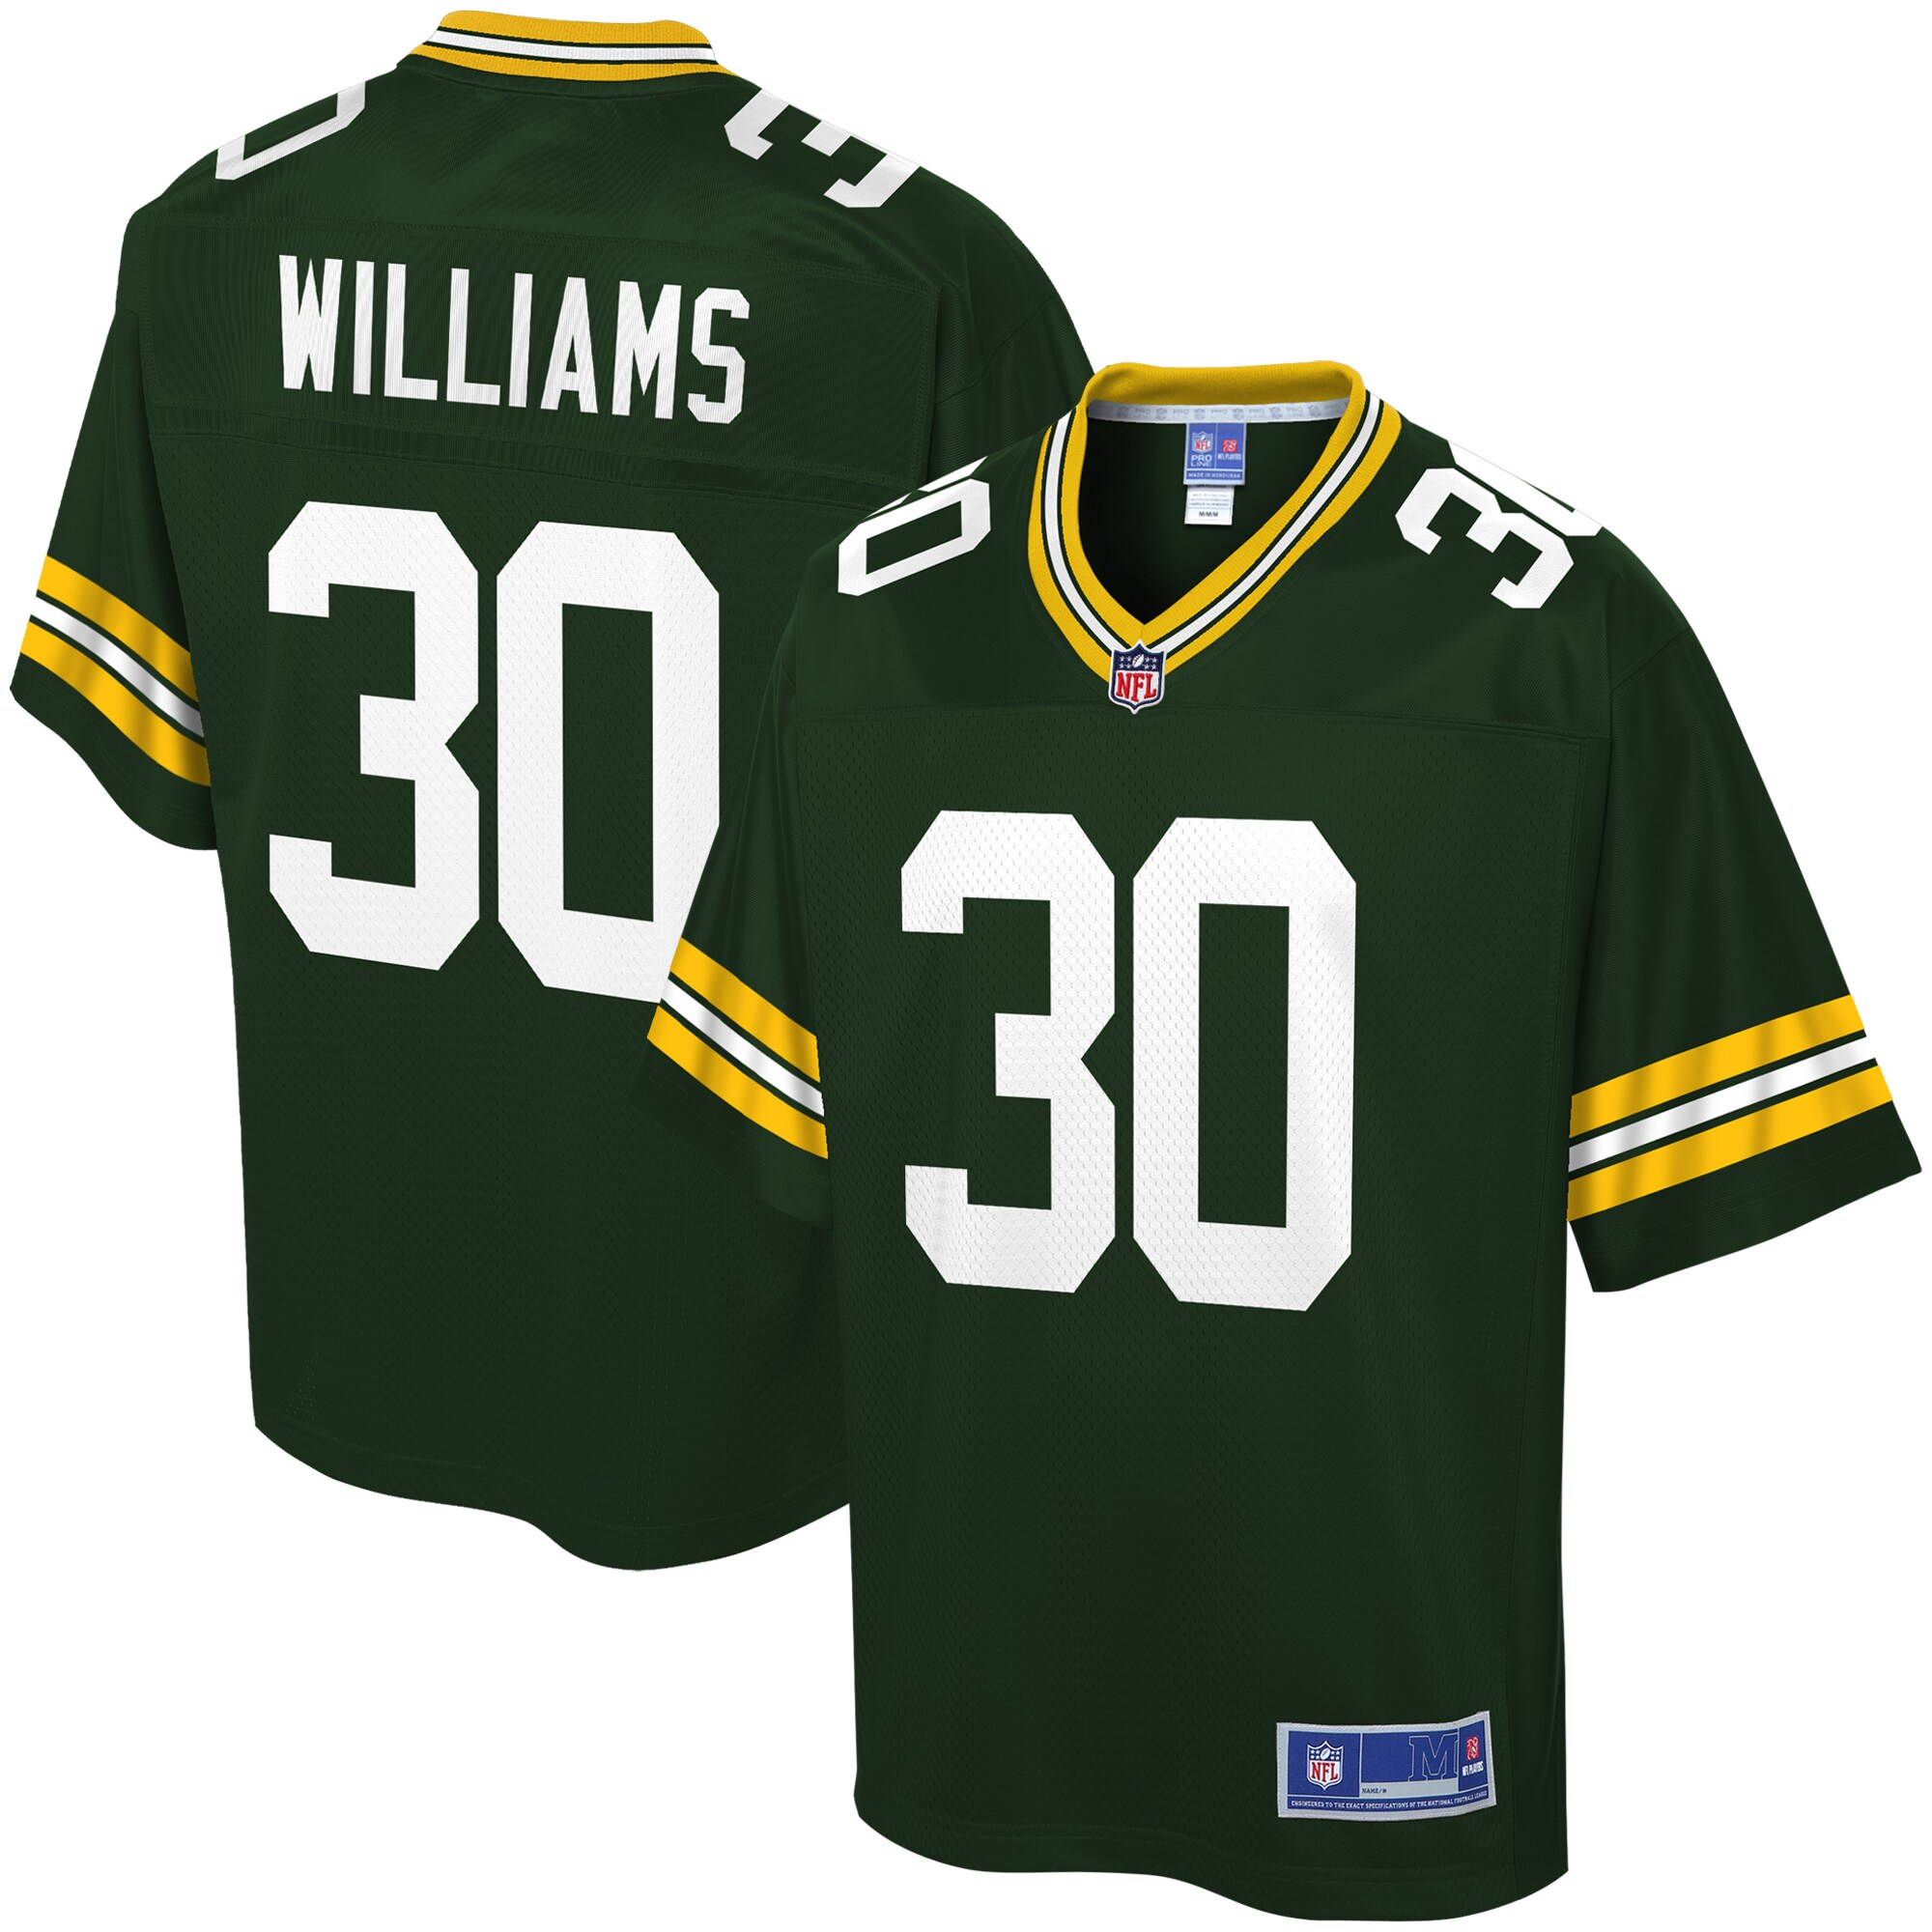 Jamaal Williams Green Bay Packers NFL Pro Line Youth Player Jersey - Green